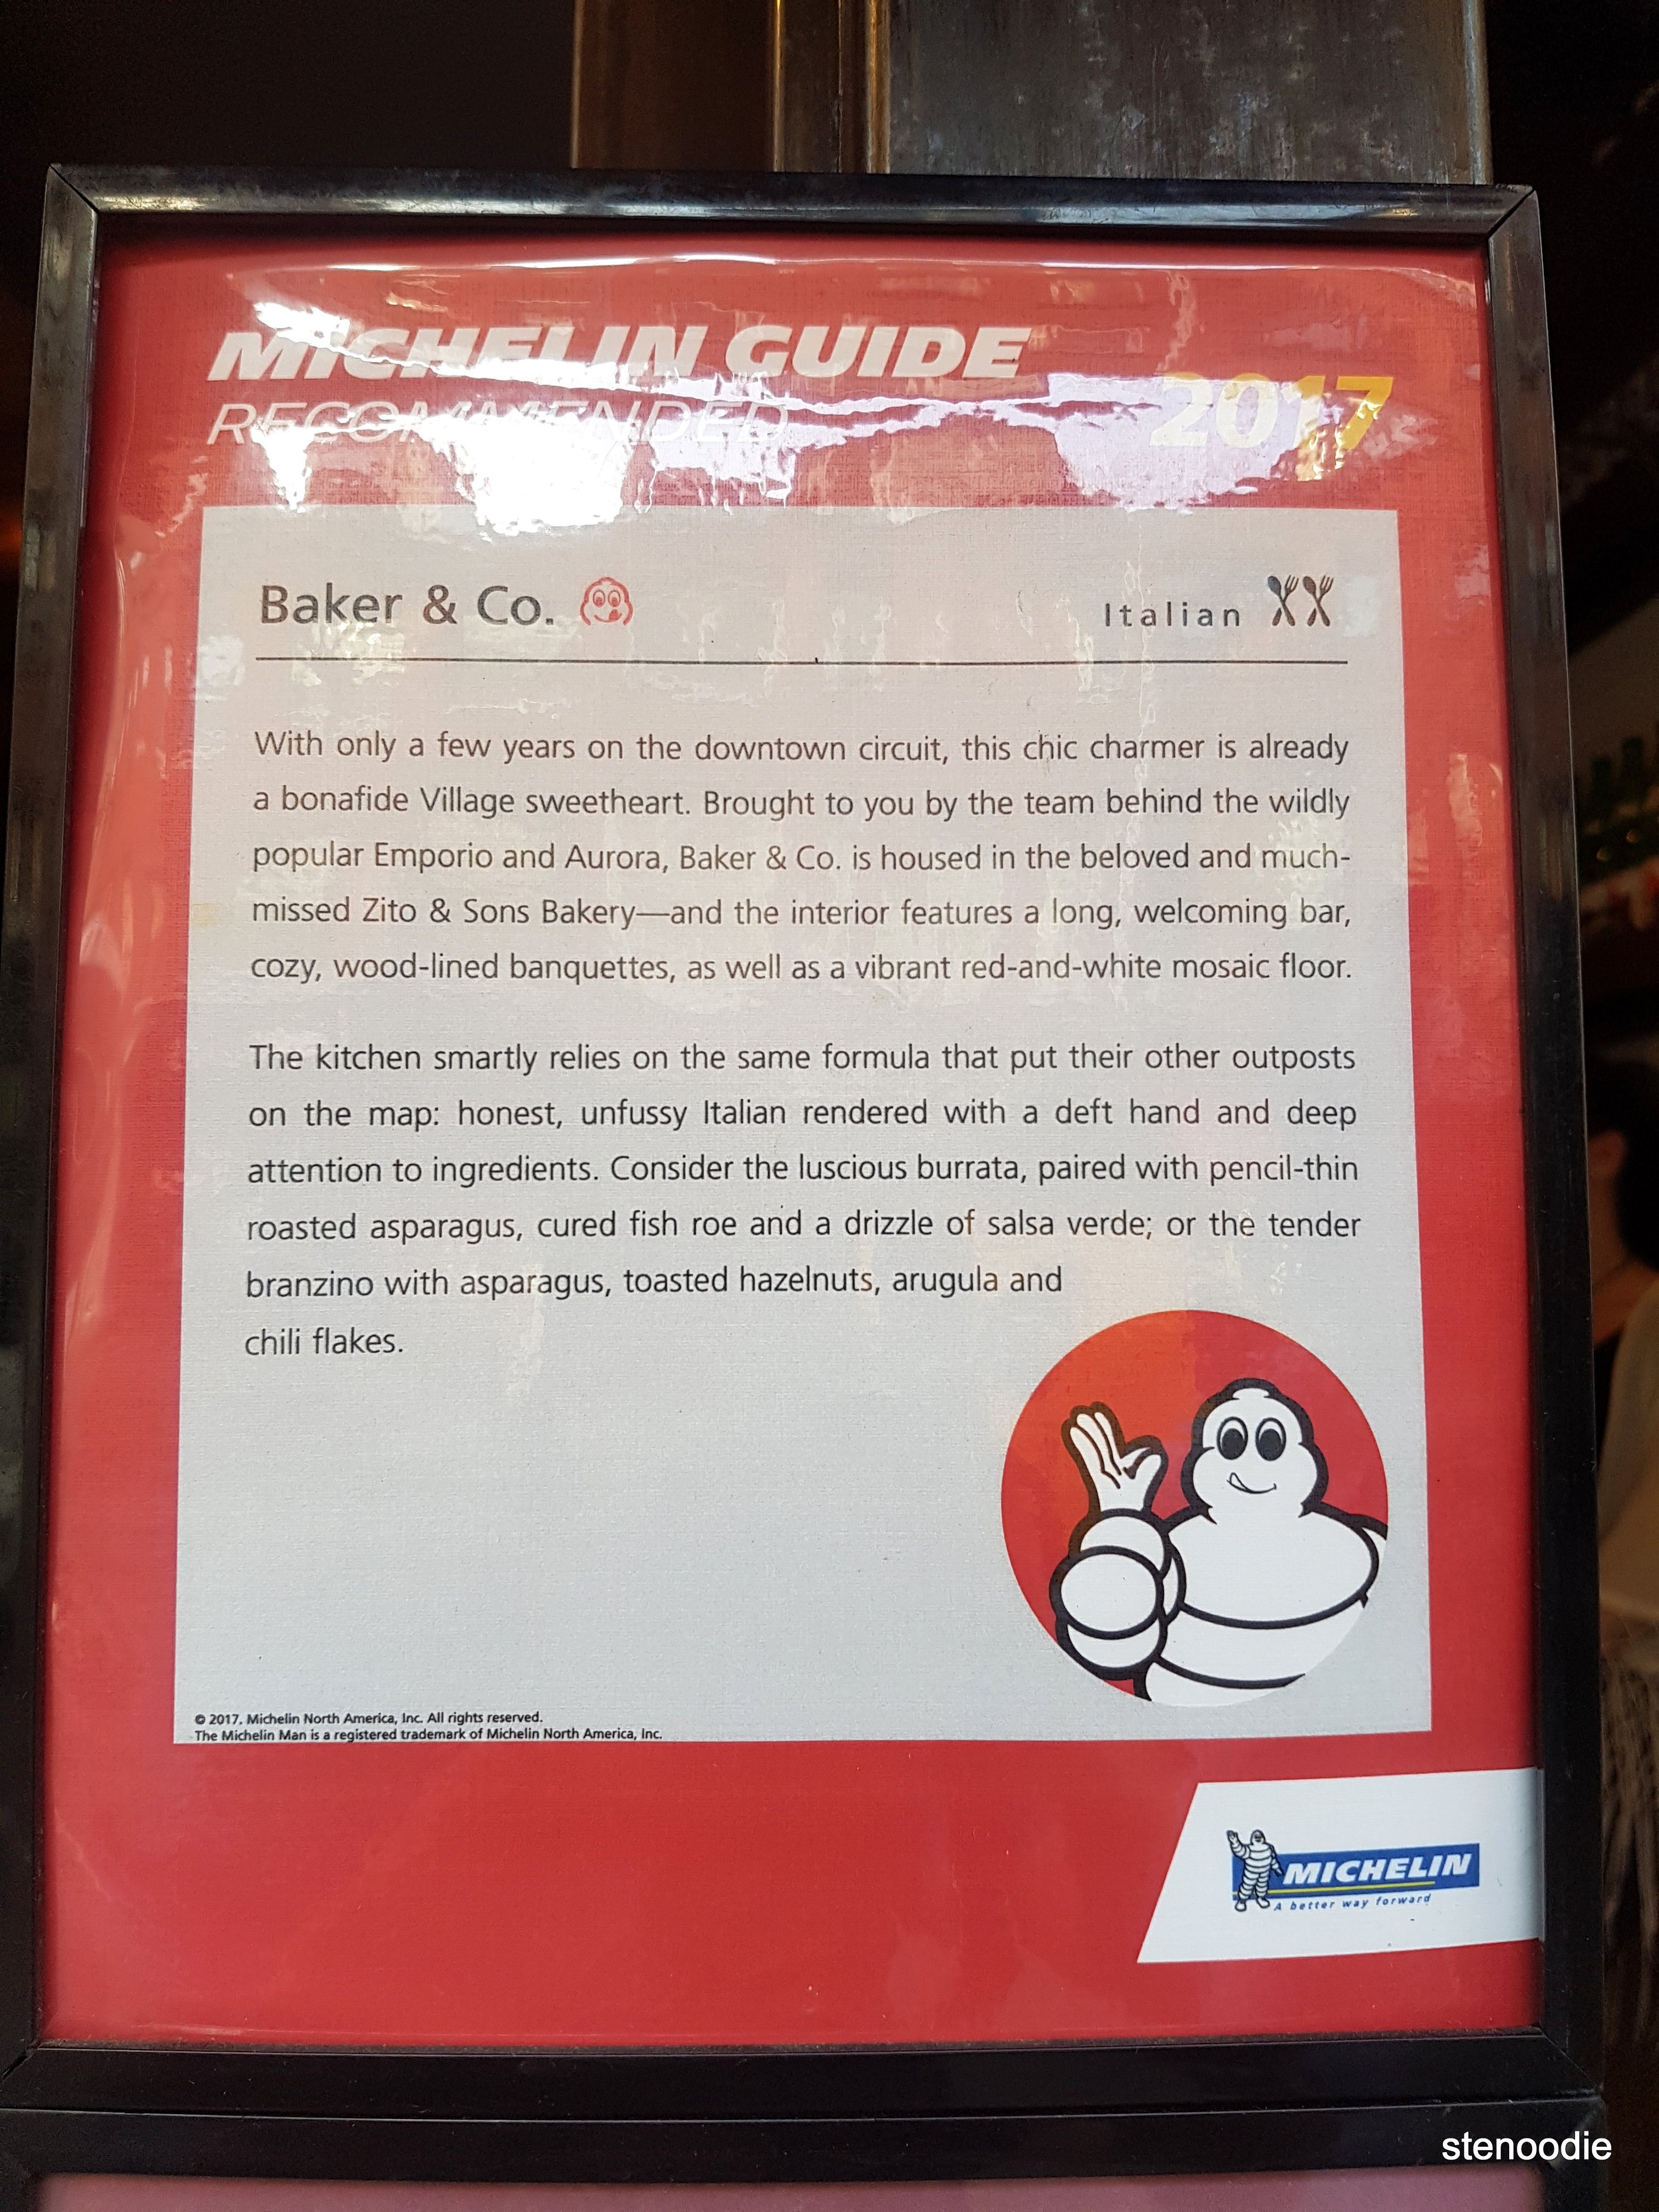 Baker & Co. Michelin Guide